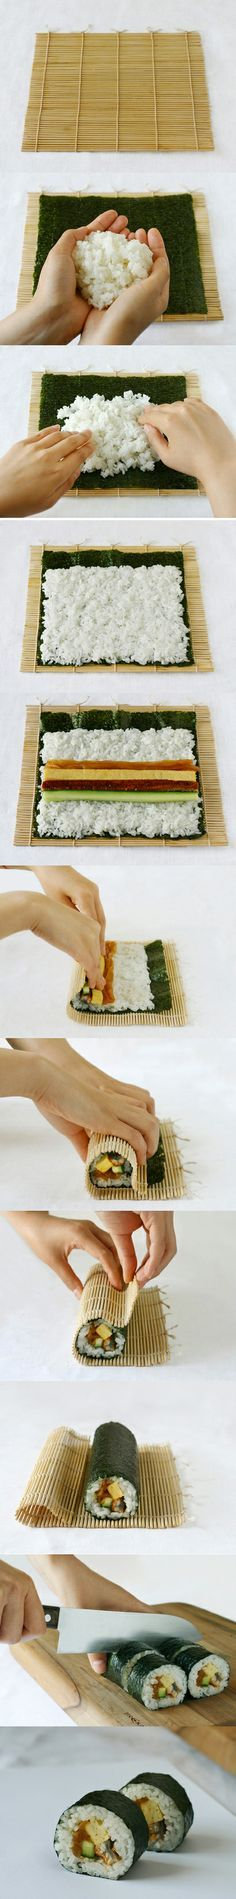 DIY - How to make sushi rolls ...You can use cauliflower 'rice' instead.